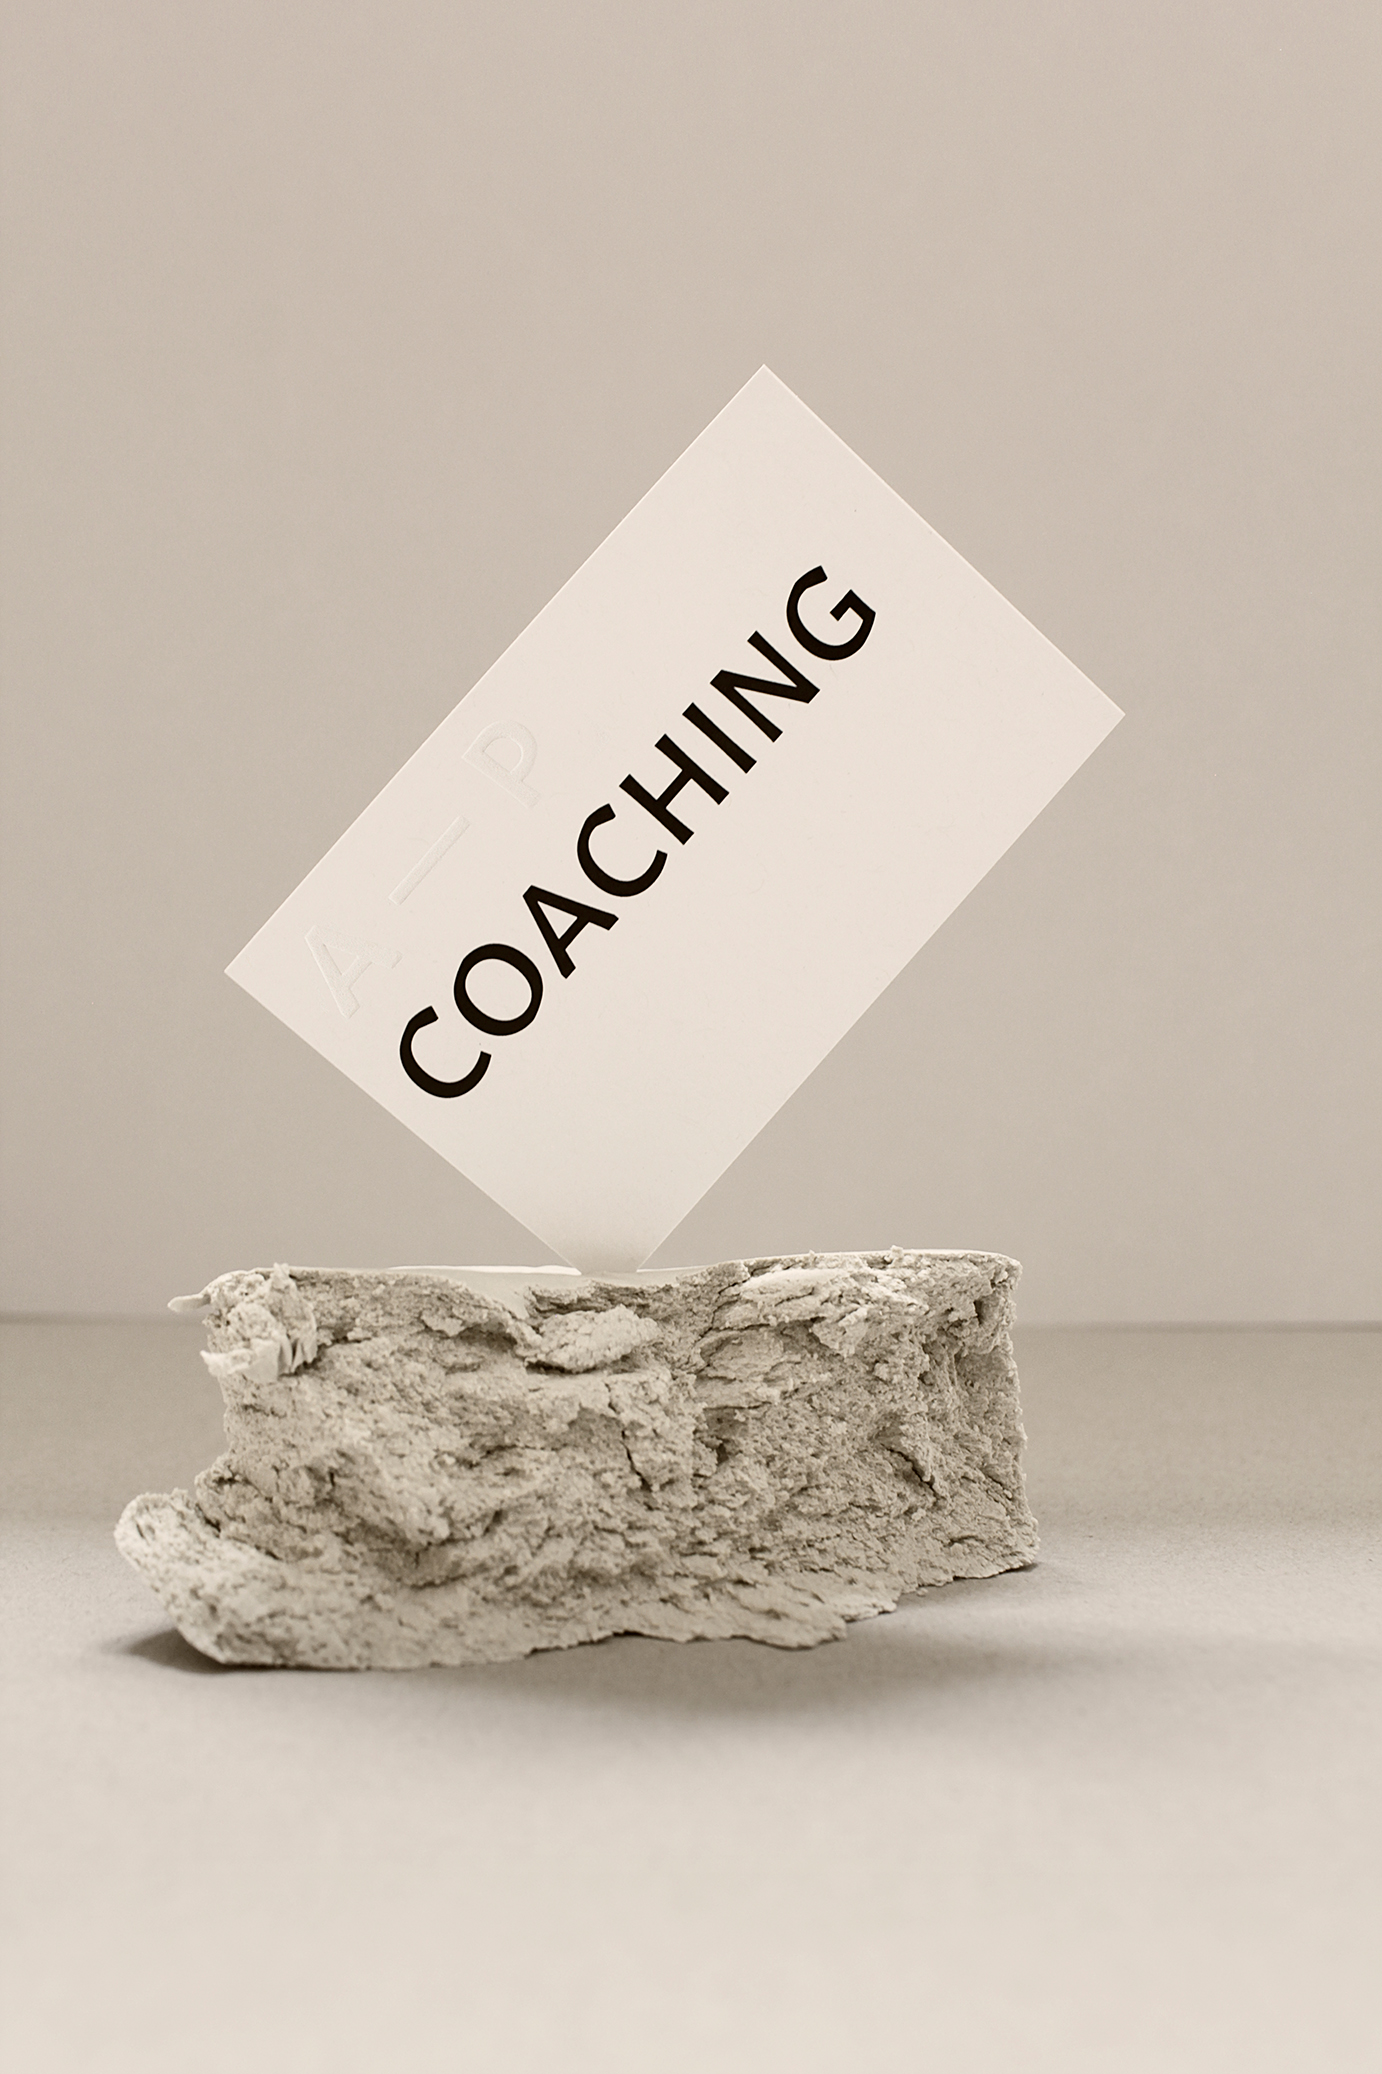 A–P_Coaching_Card_01.jpg